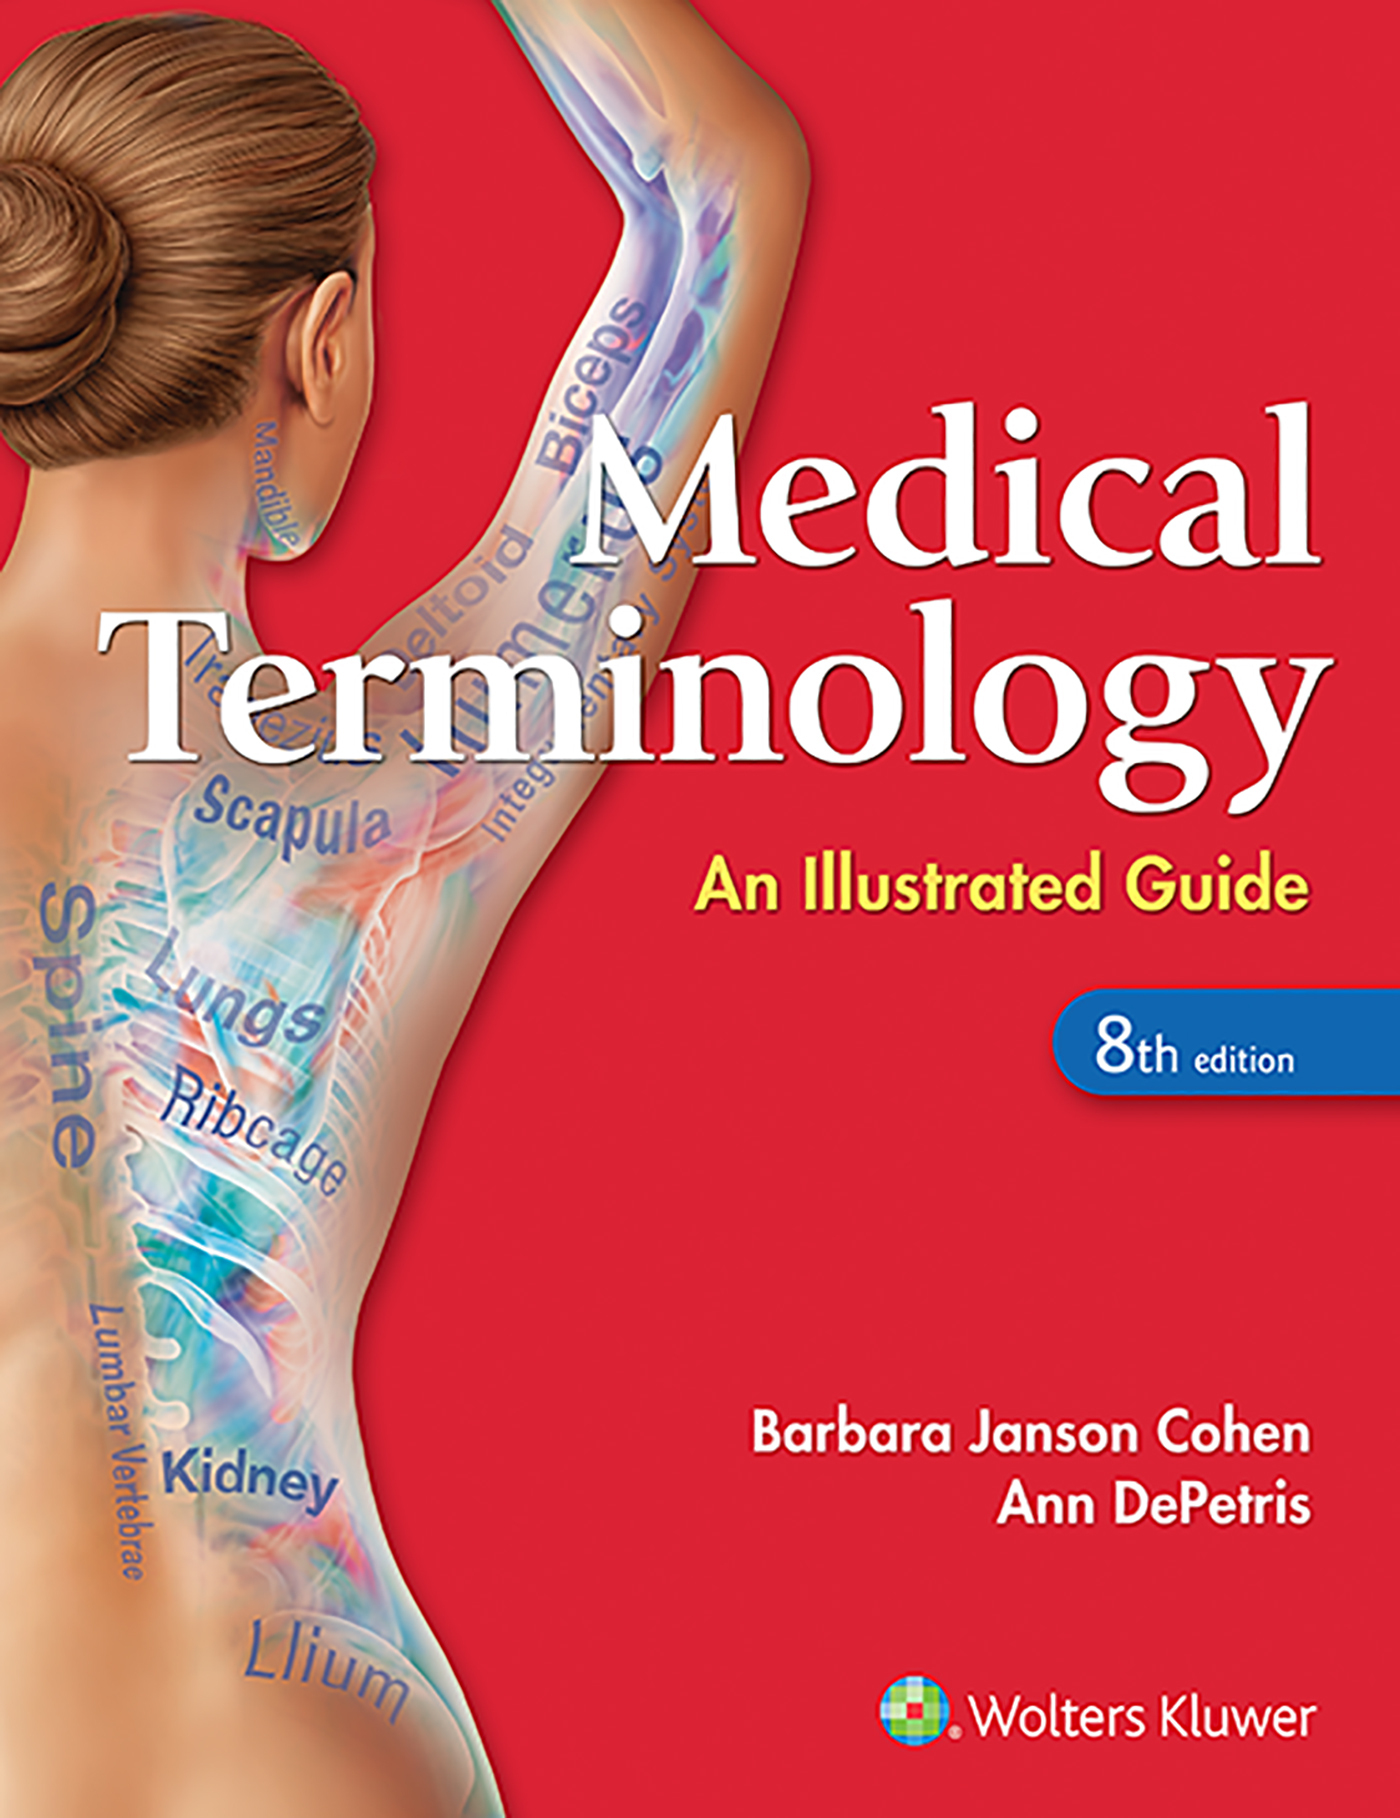 Medical Terminology : An Illustrated Guide, 8th Edition